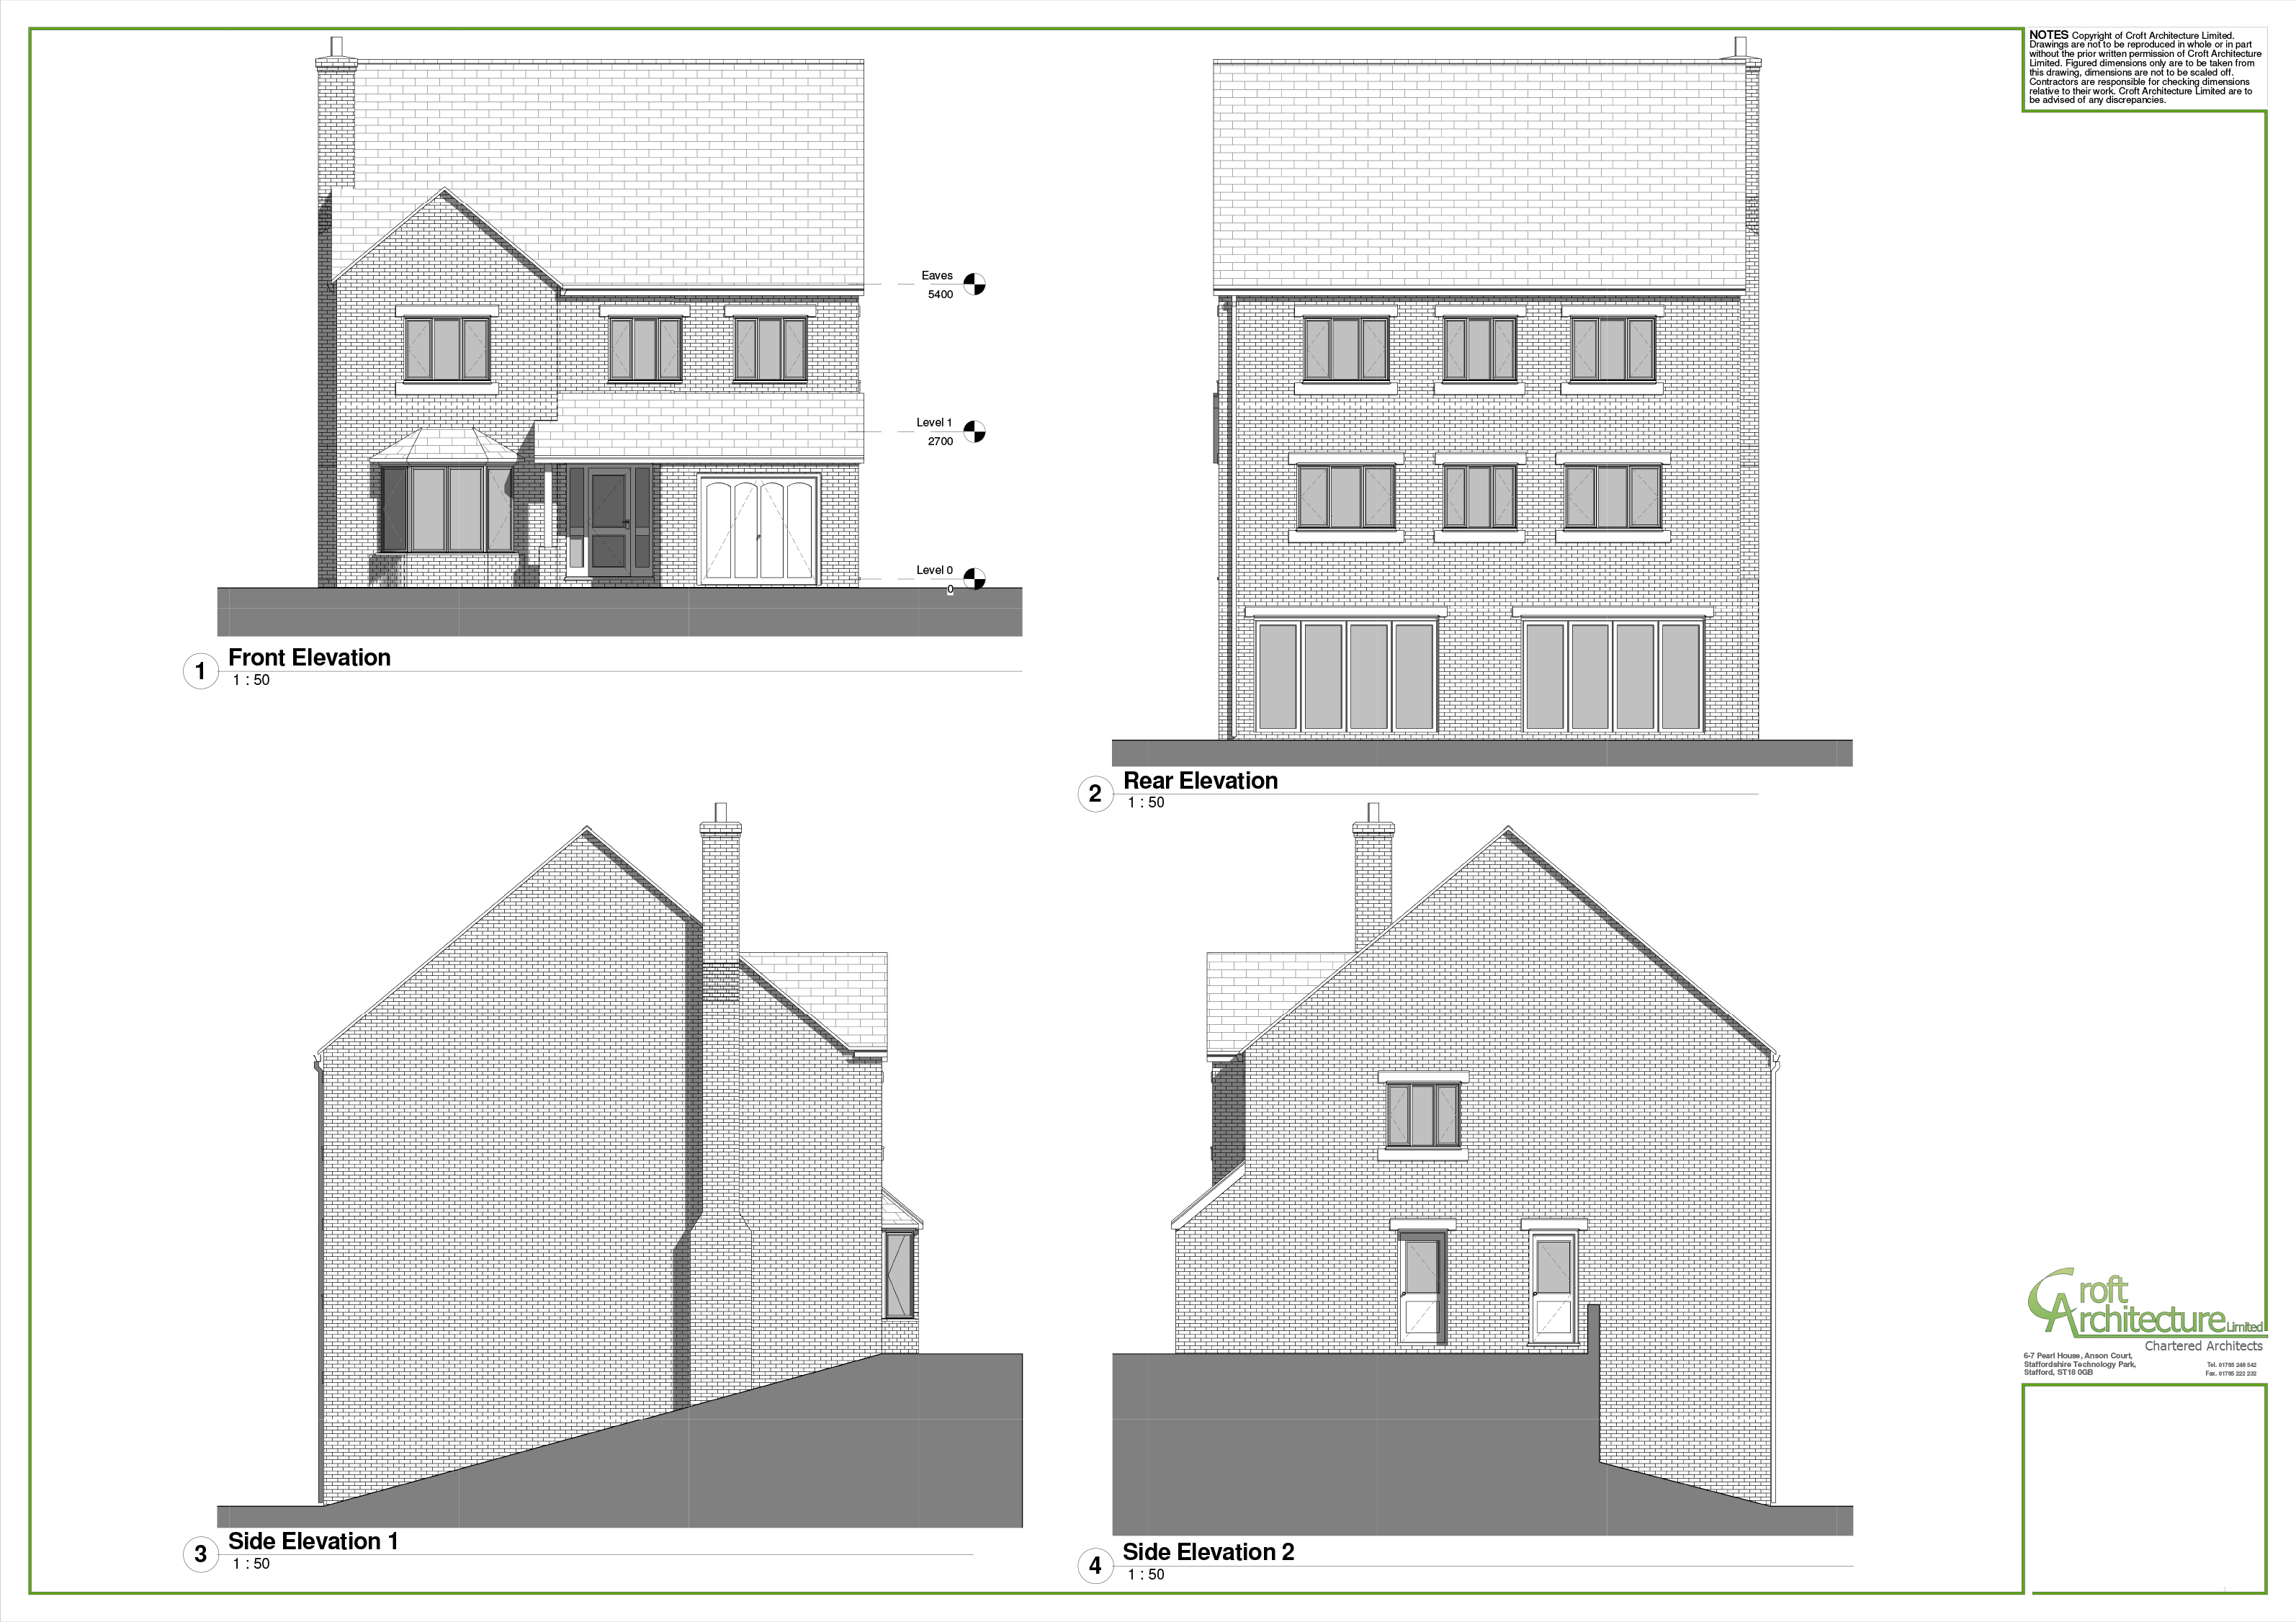 Croft Architecture Proposed Luxury Housing House Type in Staffordshire